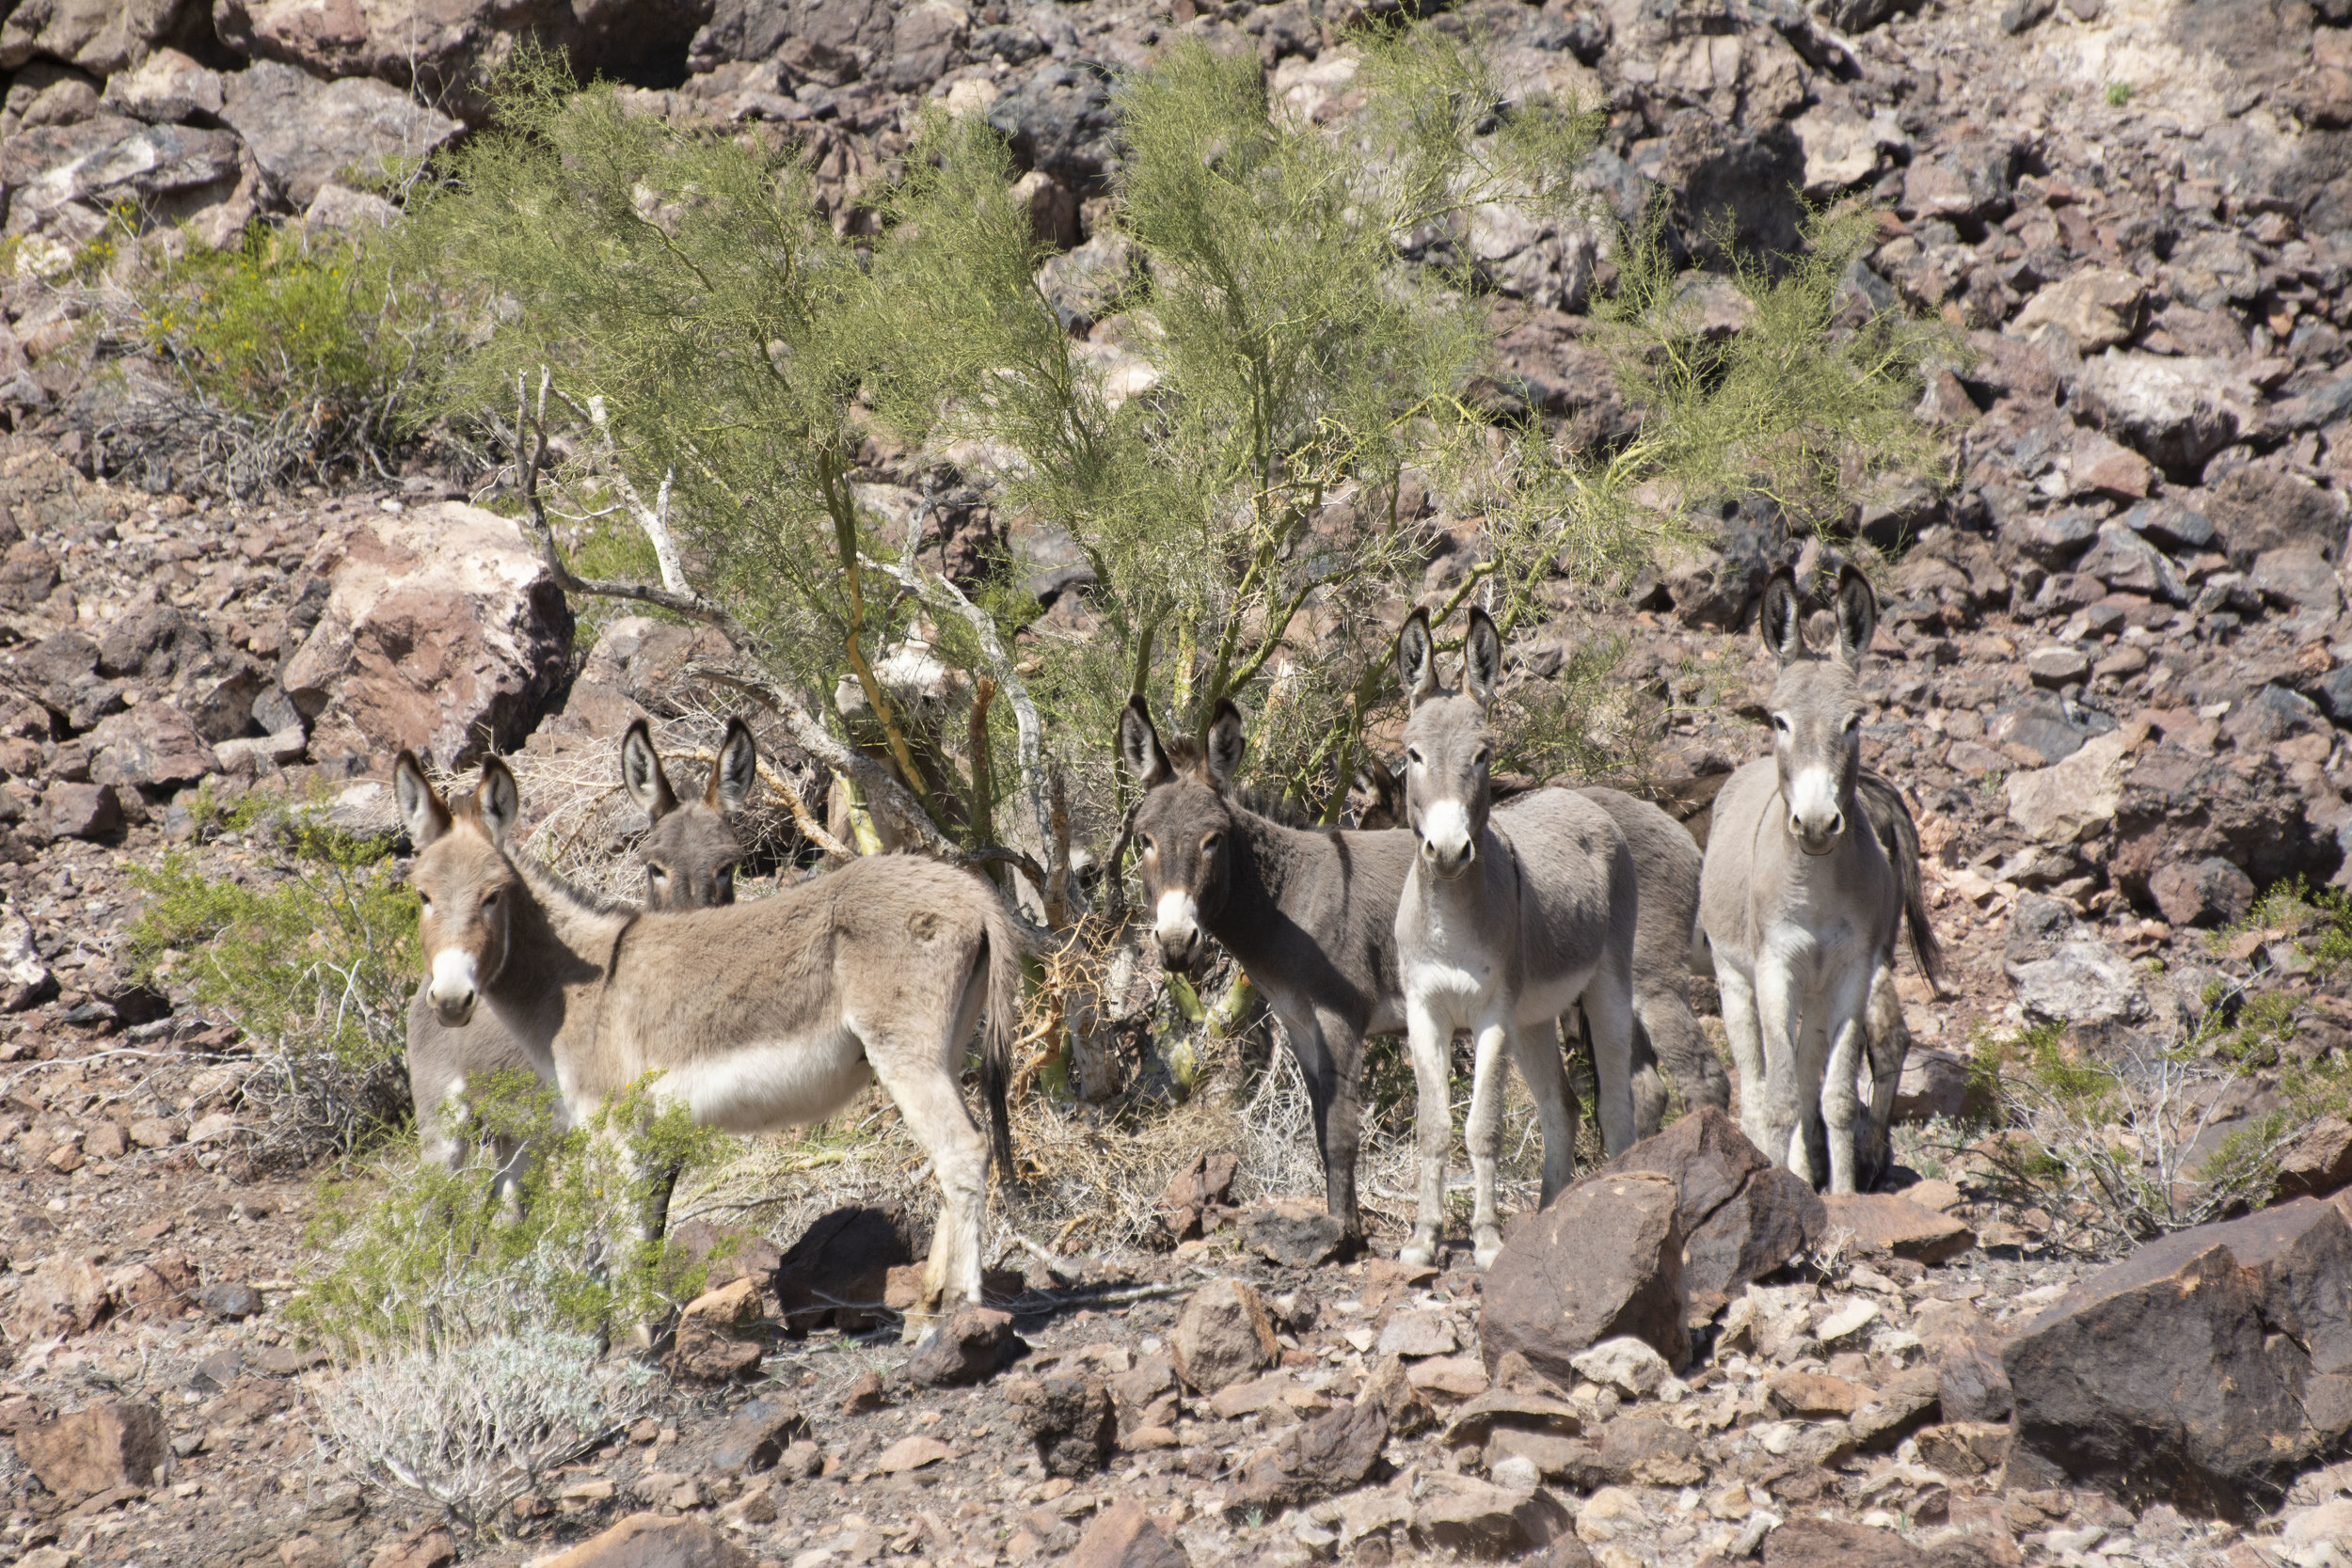 Burros of the Arizona/California desert. Photo: Ginger Kathrens